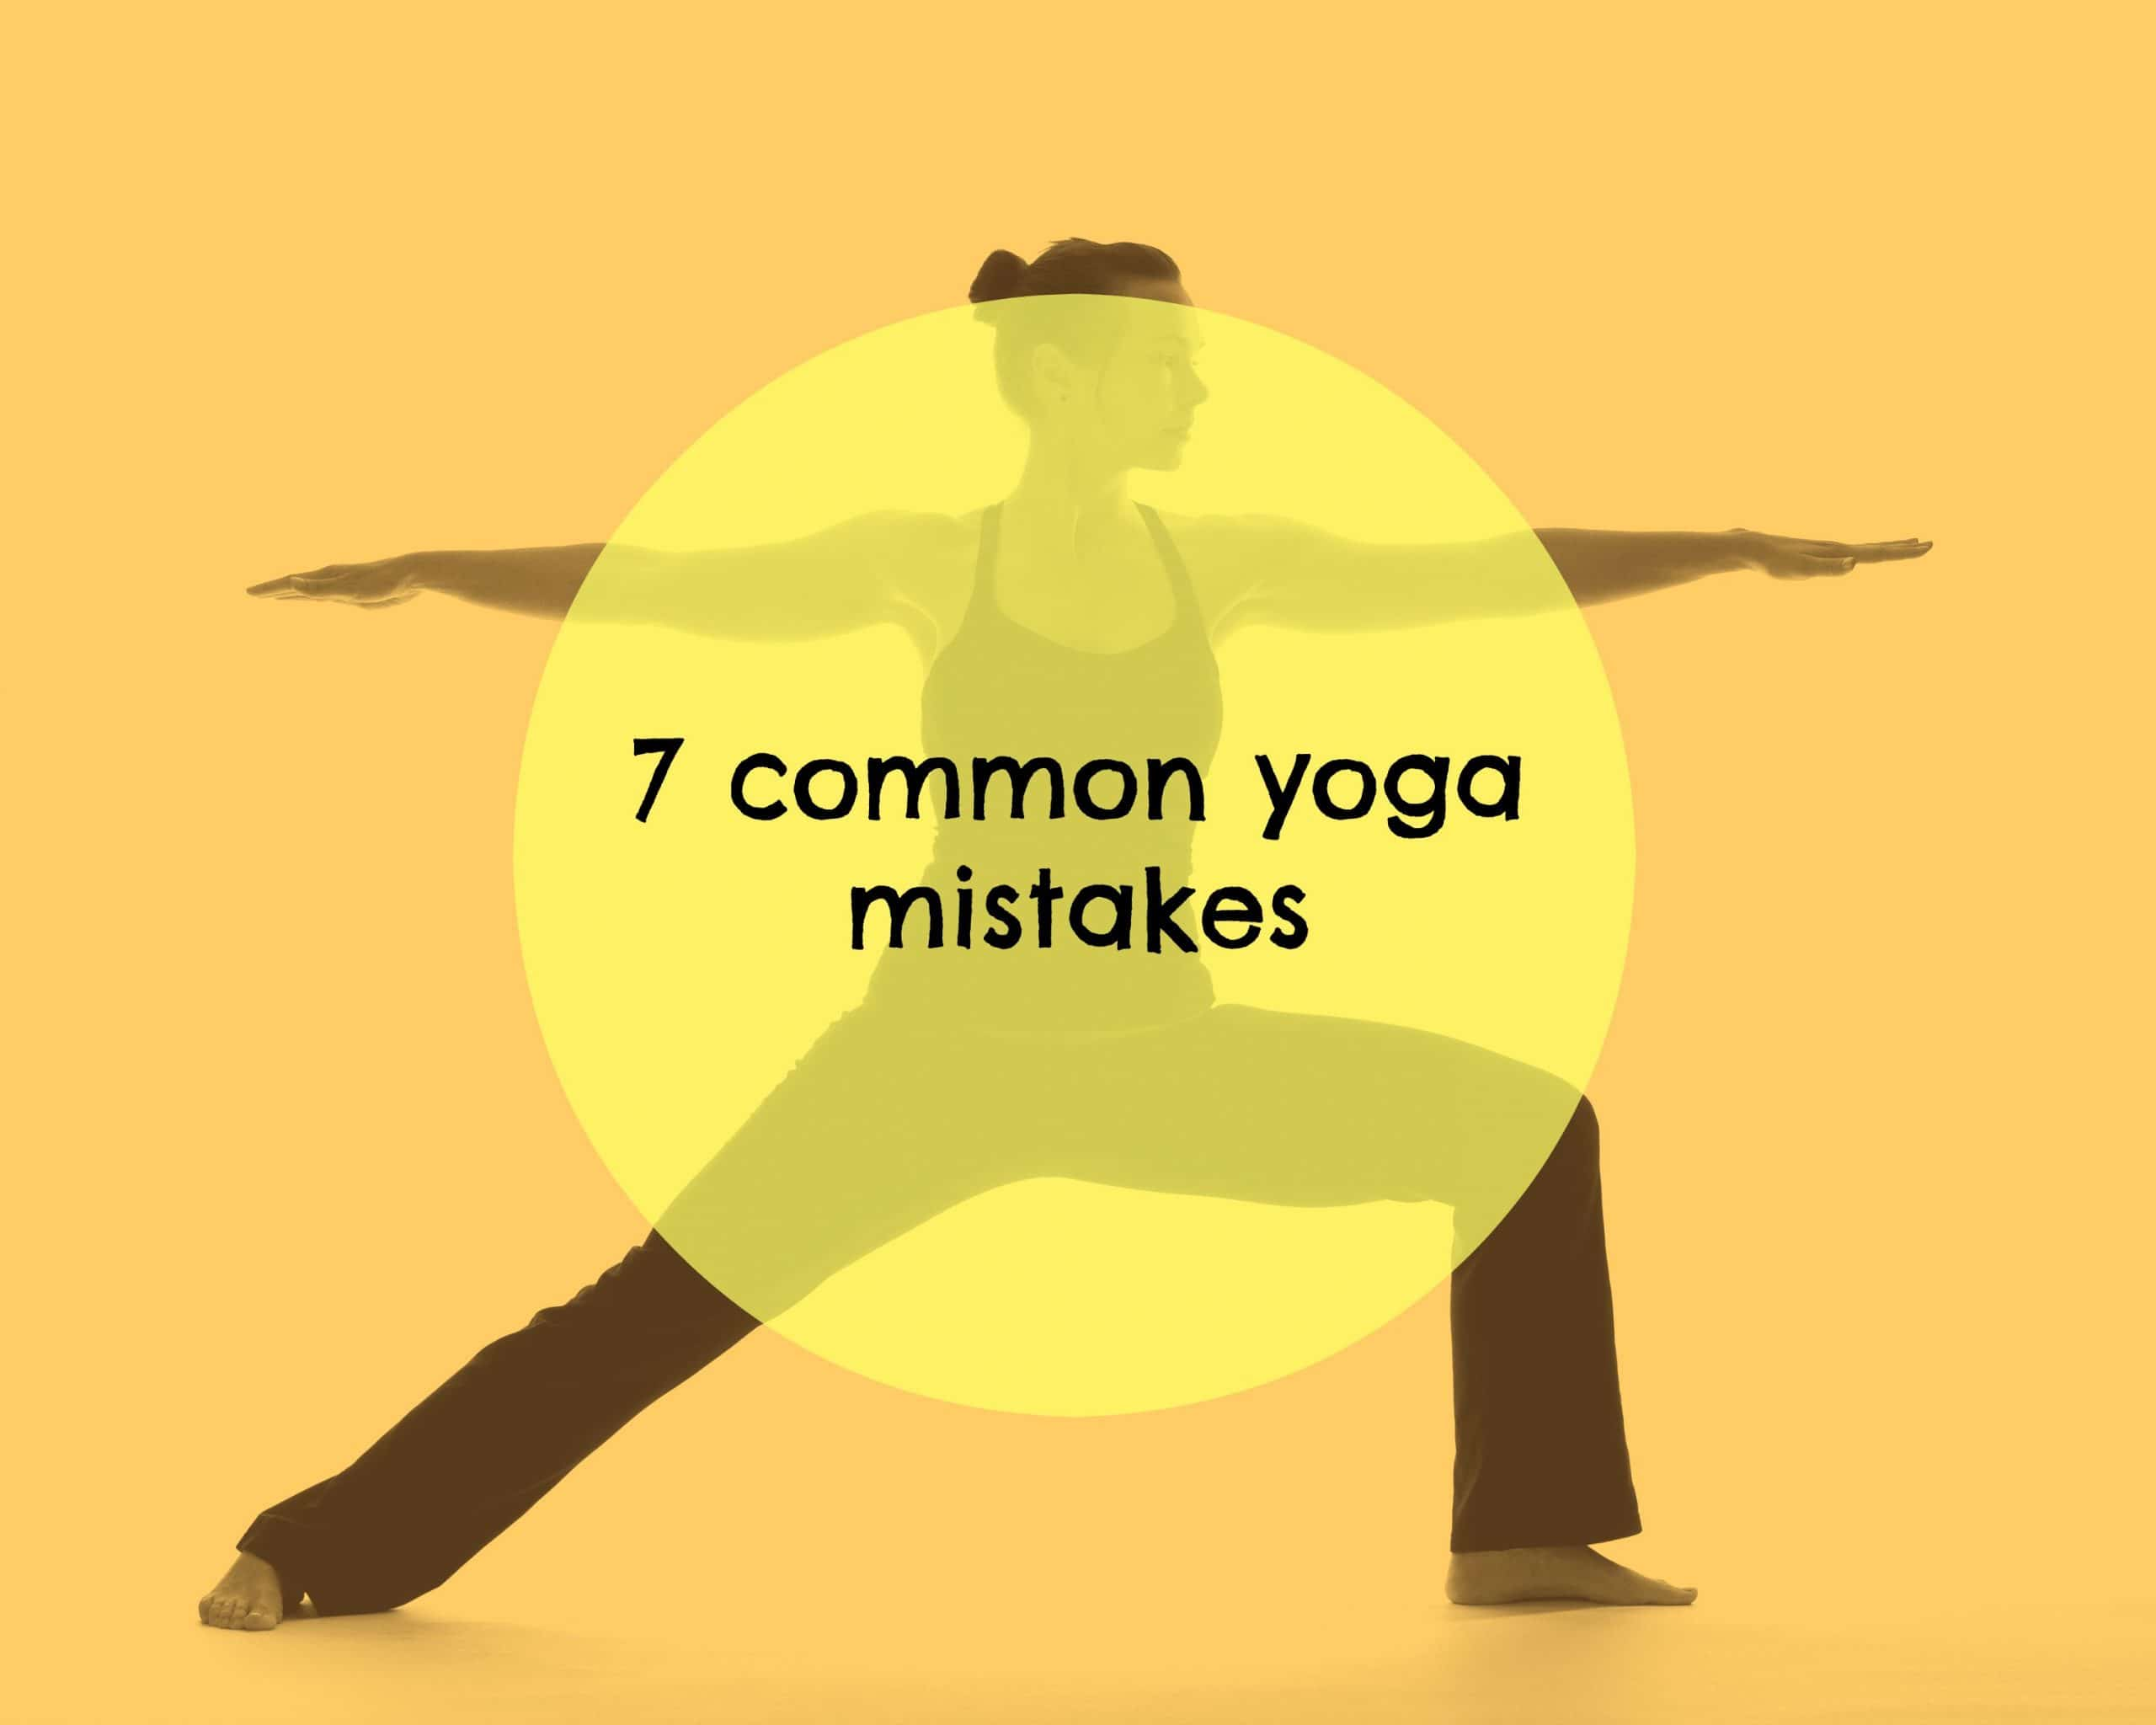 7 common yoga mistakes and how to avoid them